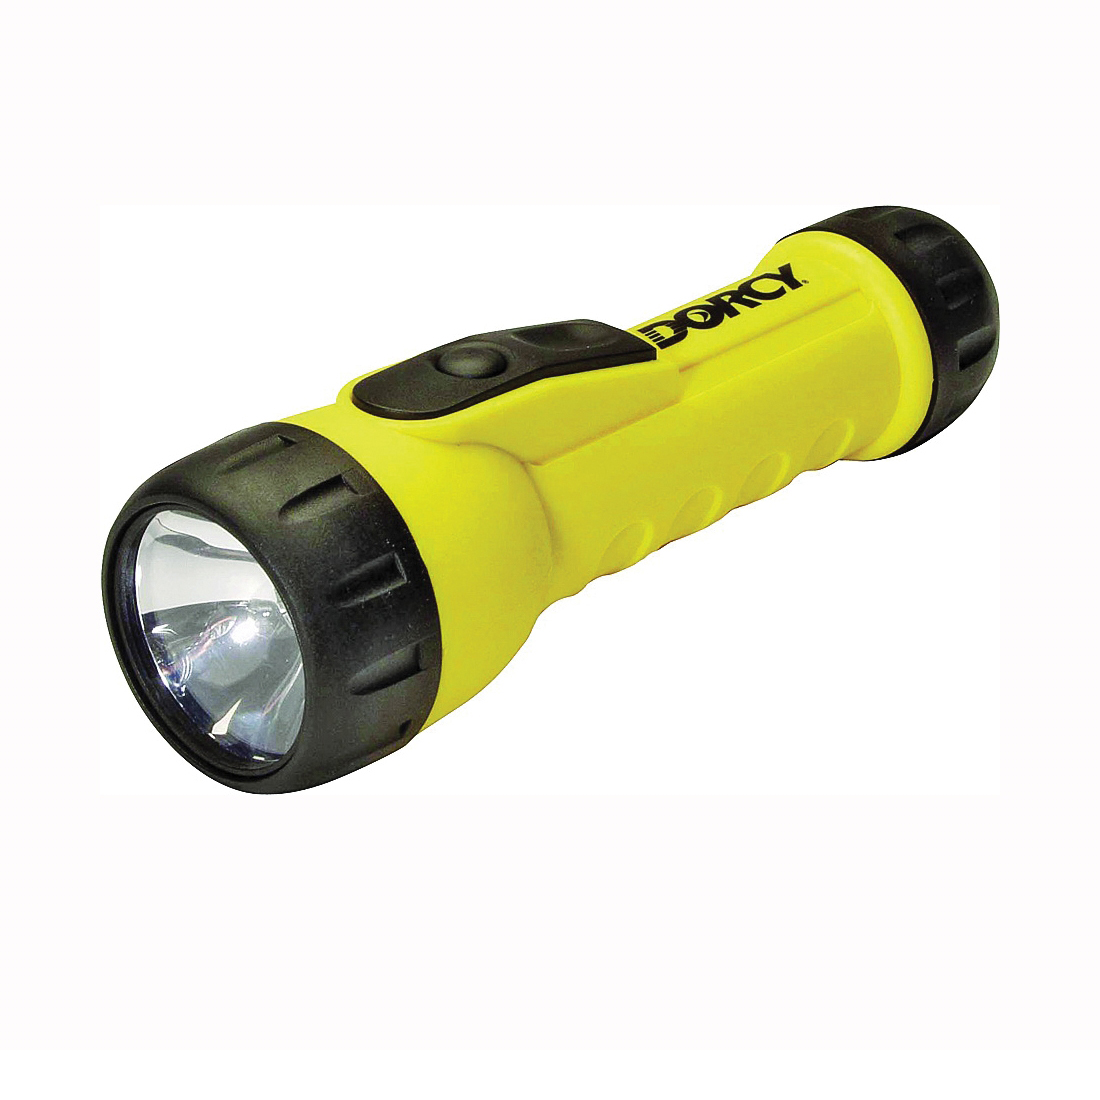 Picture of Dorcy 41-2350 Flashlight, D Battery, LED Lamp, 20 Lumens, 37 m Beam Distance, 123 hr Run Time, Yellow